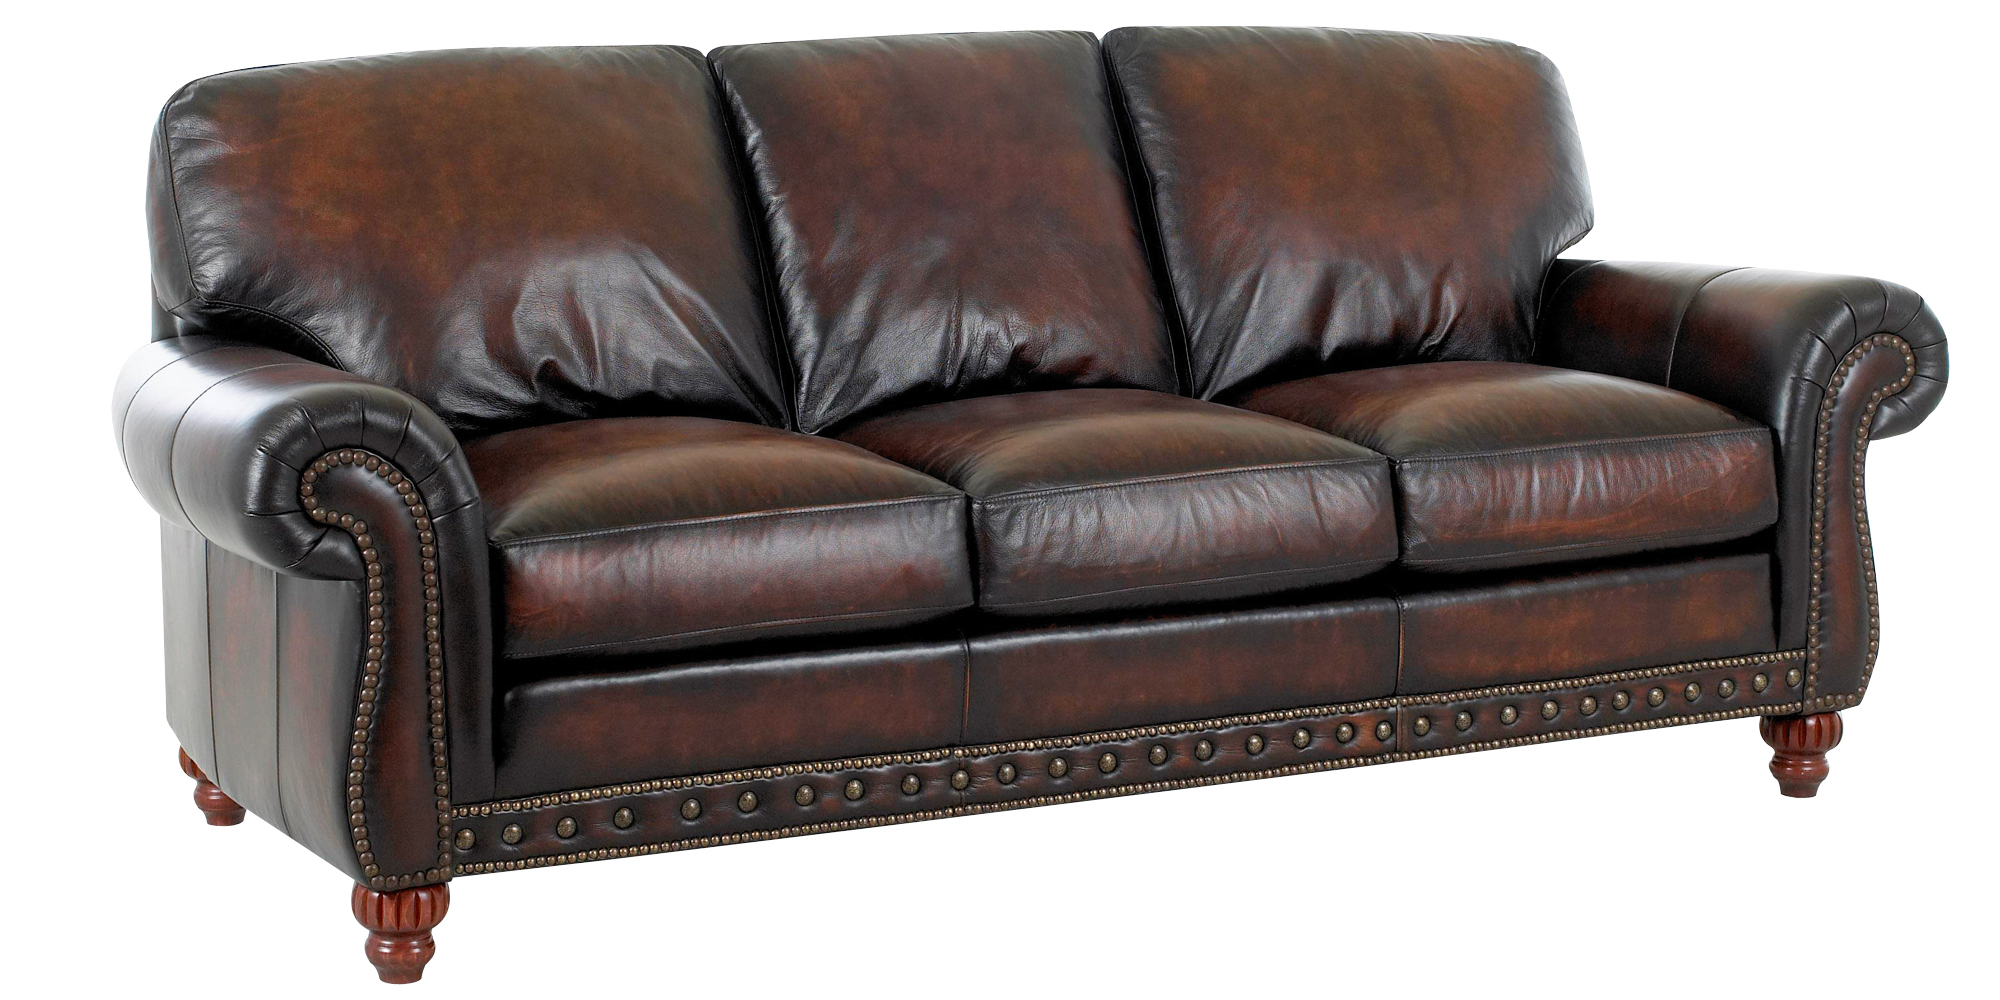 leather furniture gerard old world european collection UWLEOLK